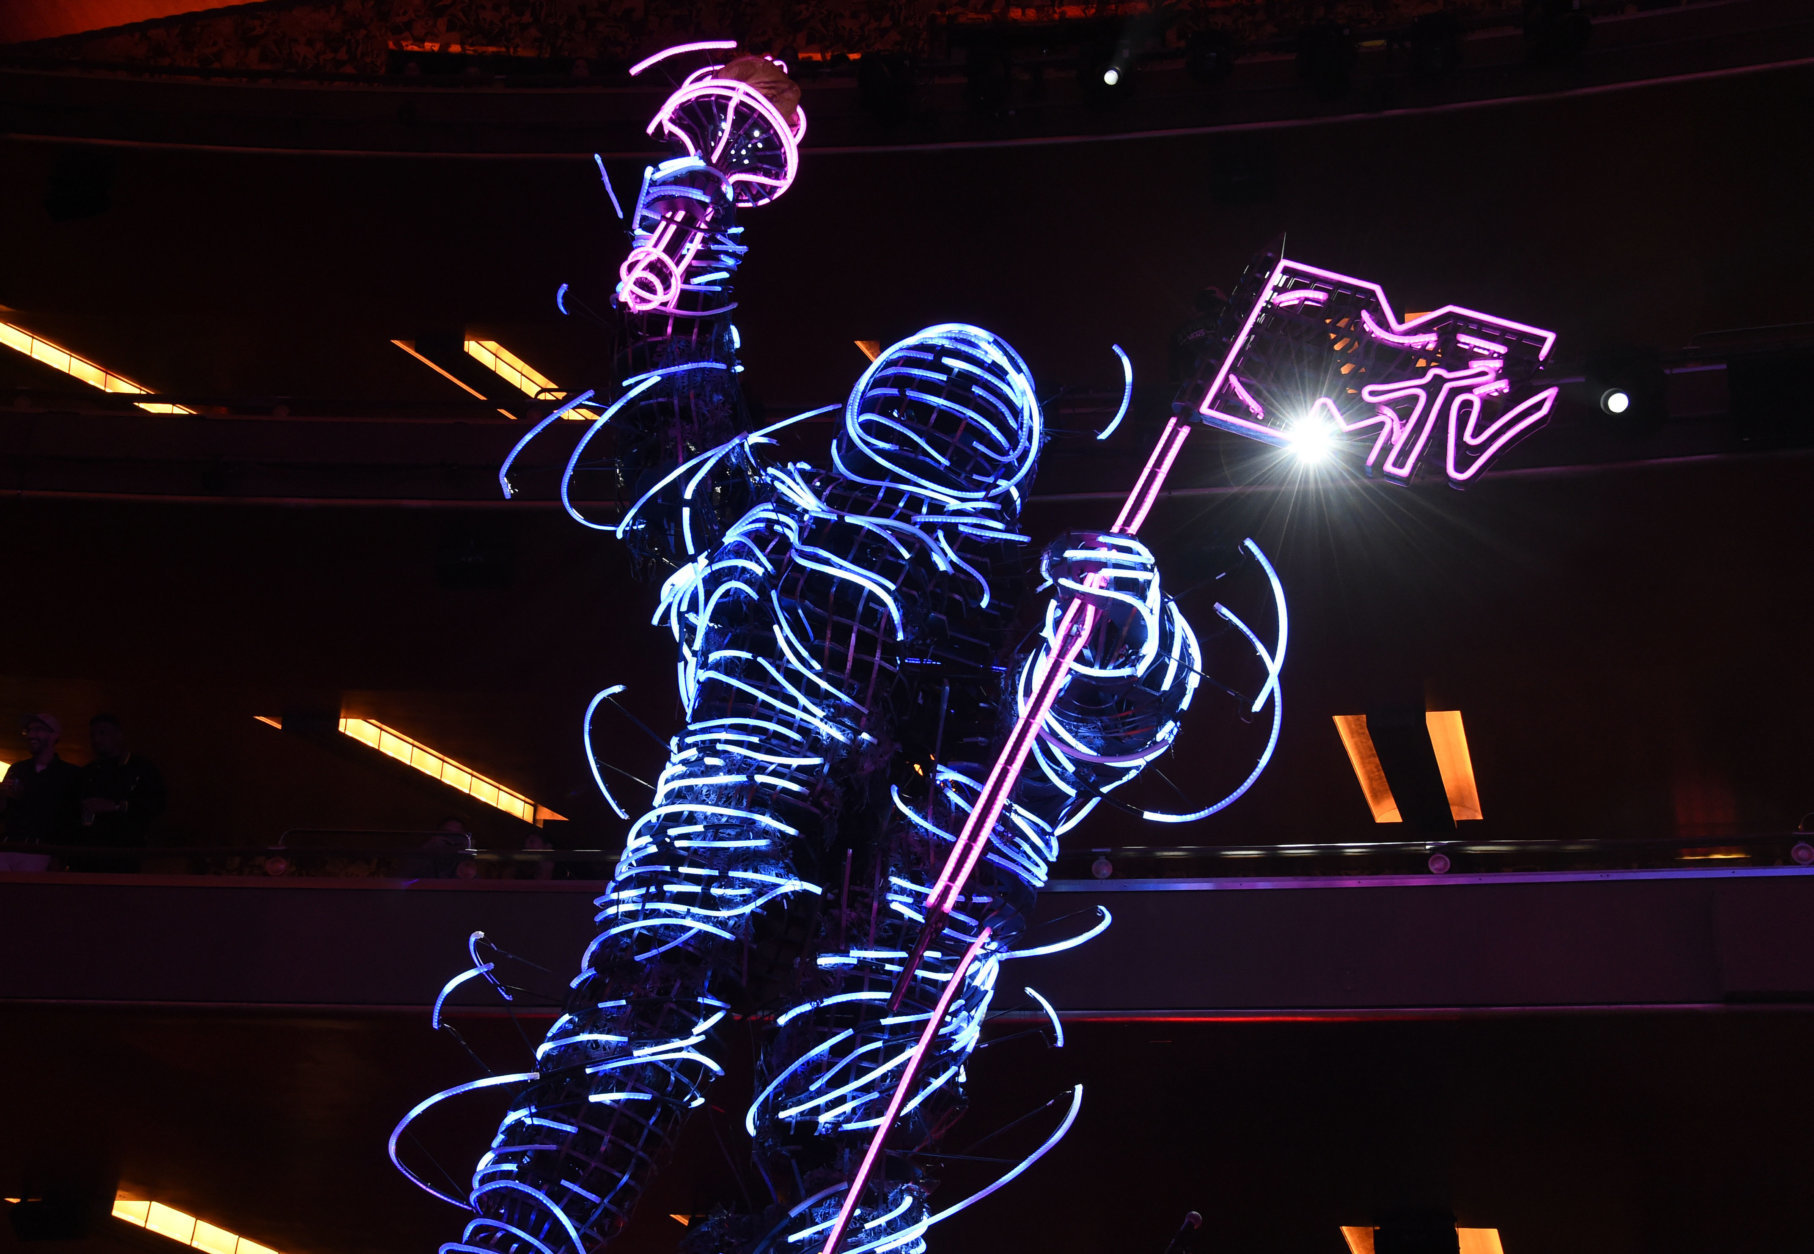 A view of a neon Moon Man appears at the MTV Video Music Awards at Radio City Music Hall on Monday, Aug. 20, 2018, in New York. (Photo by Chris Pizzello/Invision/AP)